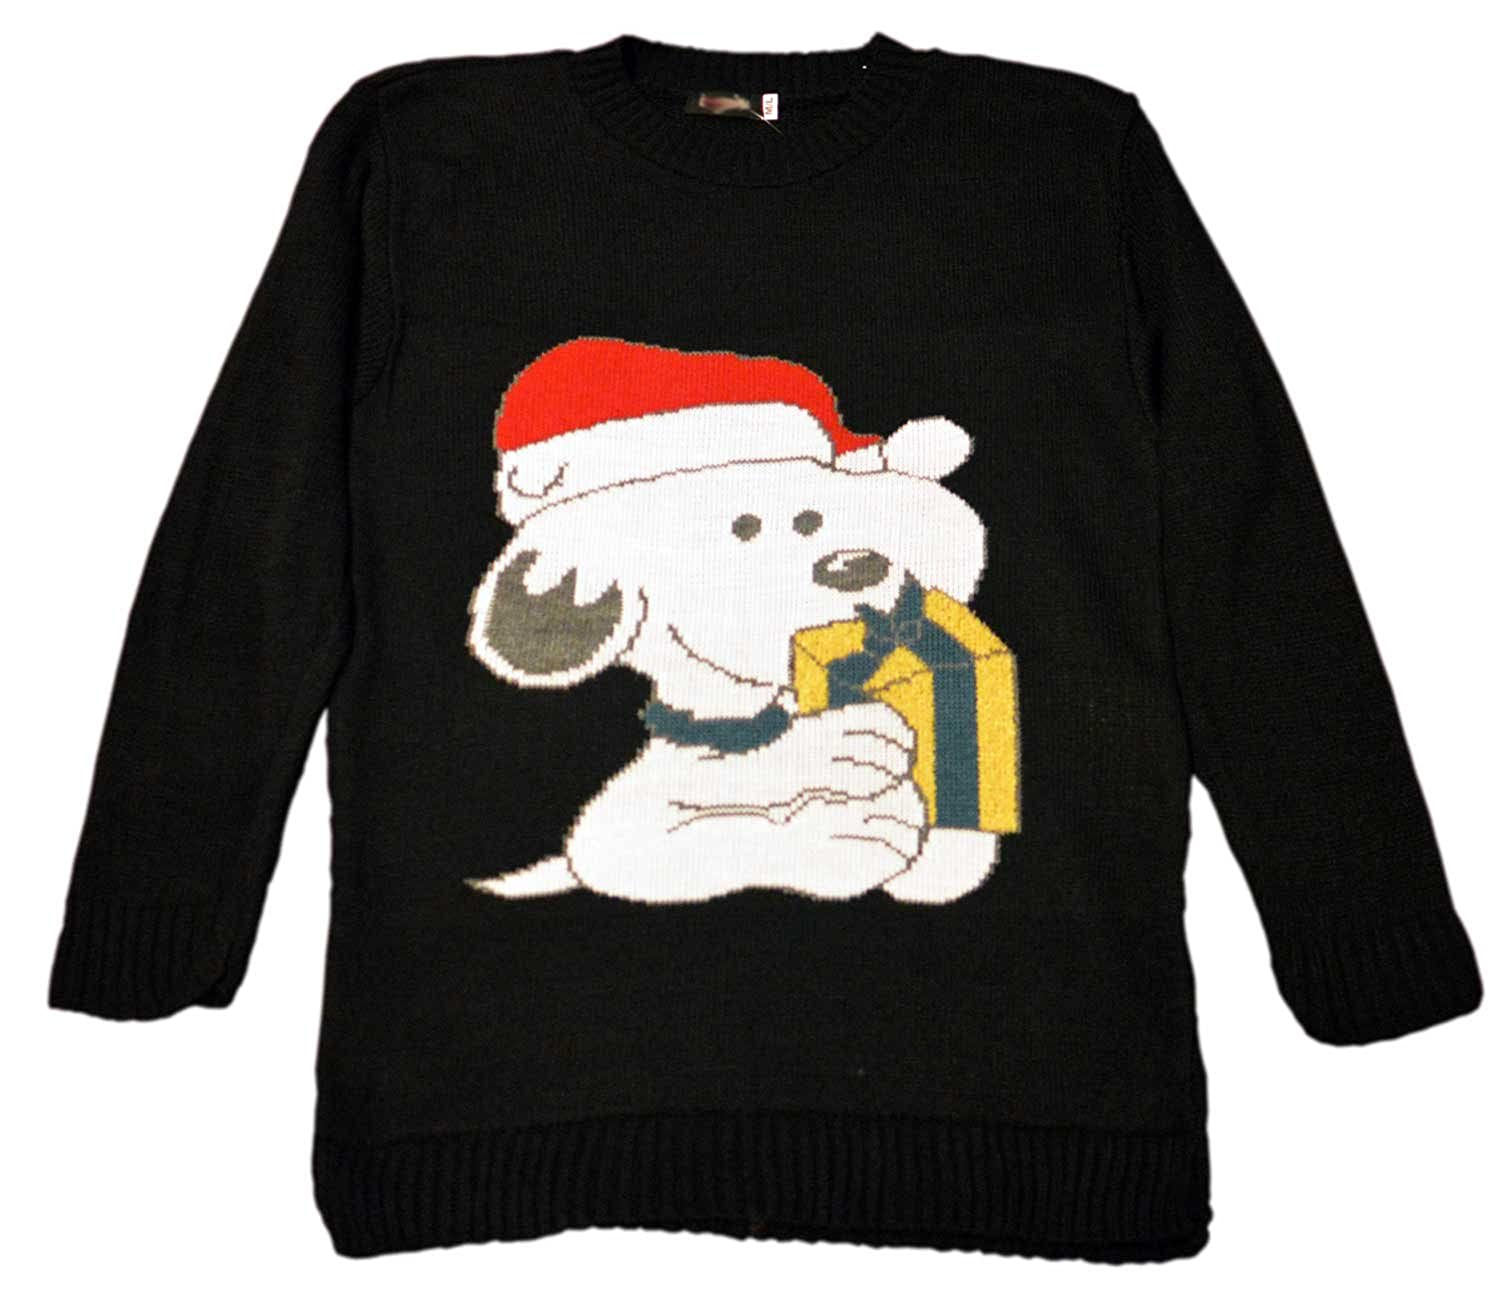 WOMENS LADIES UNISEX NOVELTY SNOOPY CHRISTMAS JUMPER SWEATER TOP ...